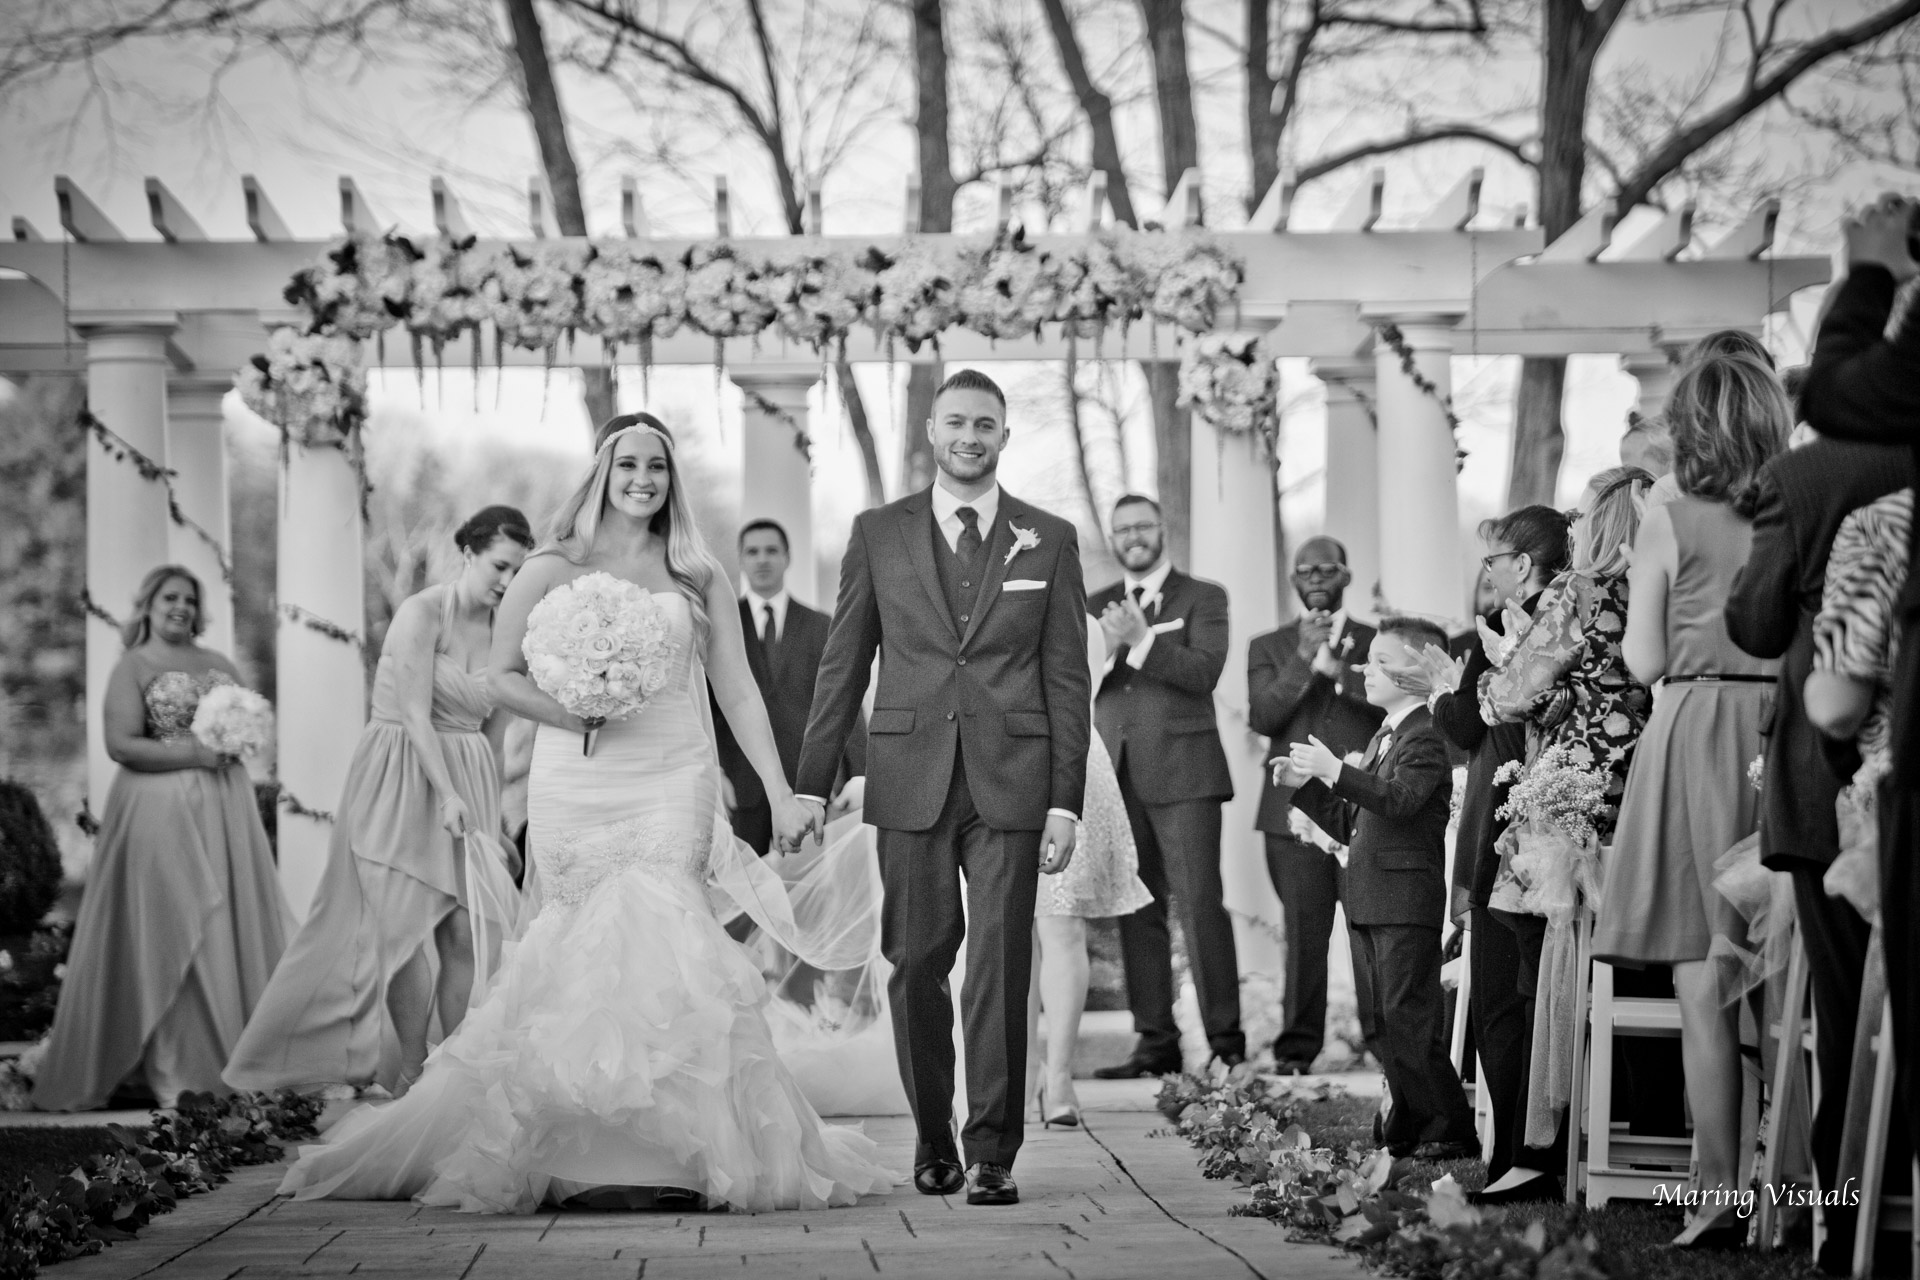 The Wedding Recessional